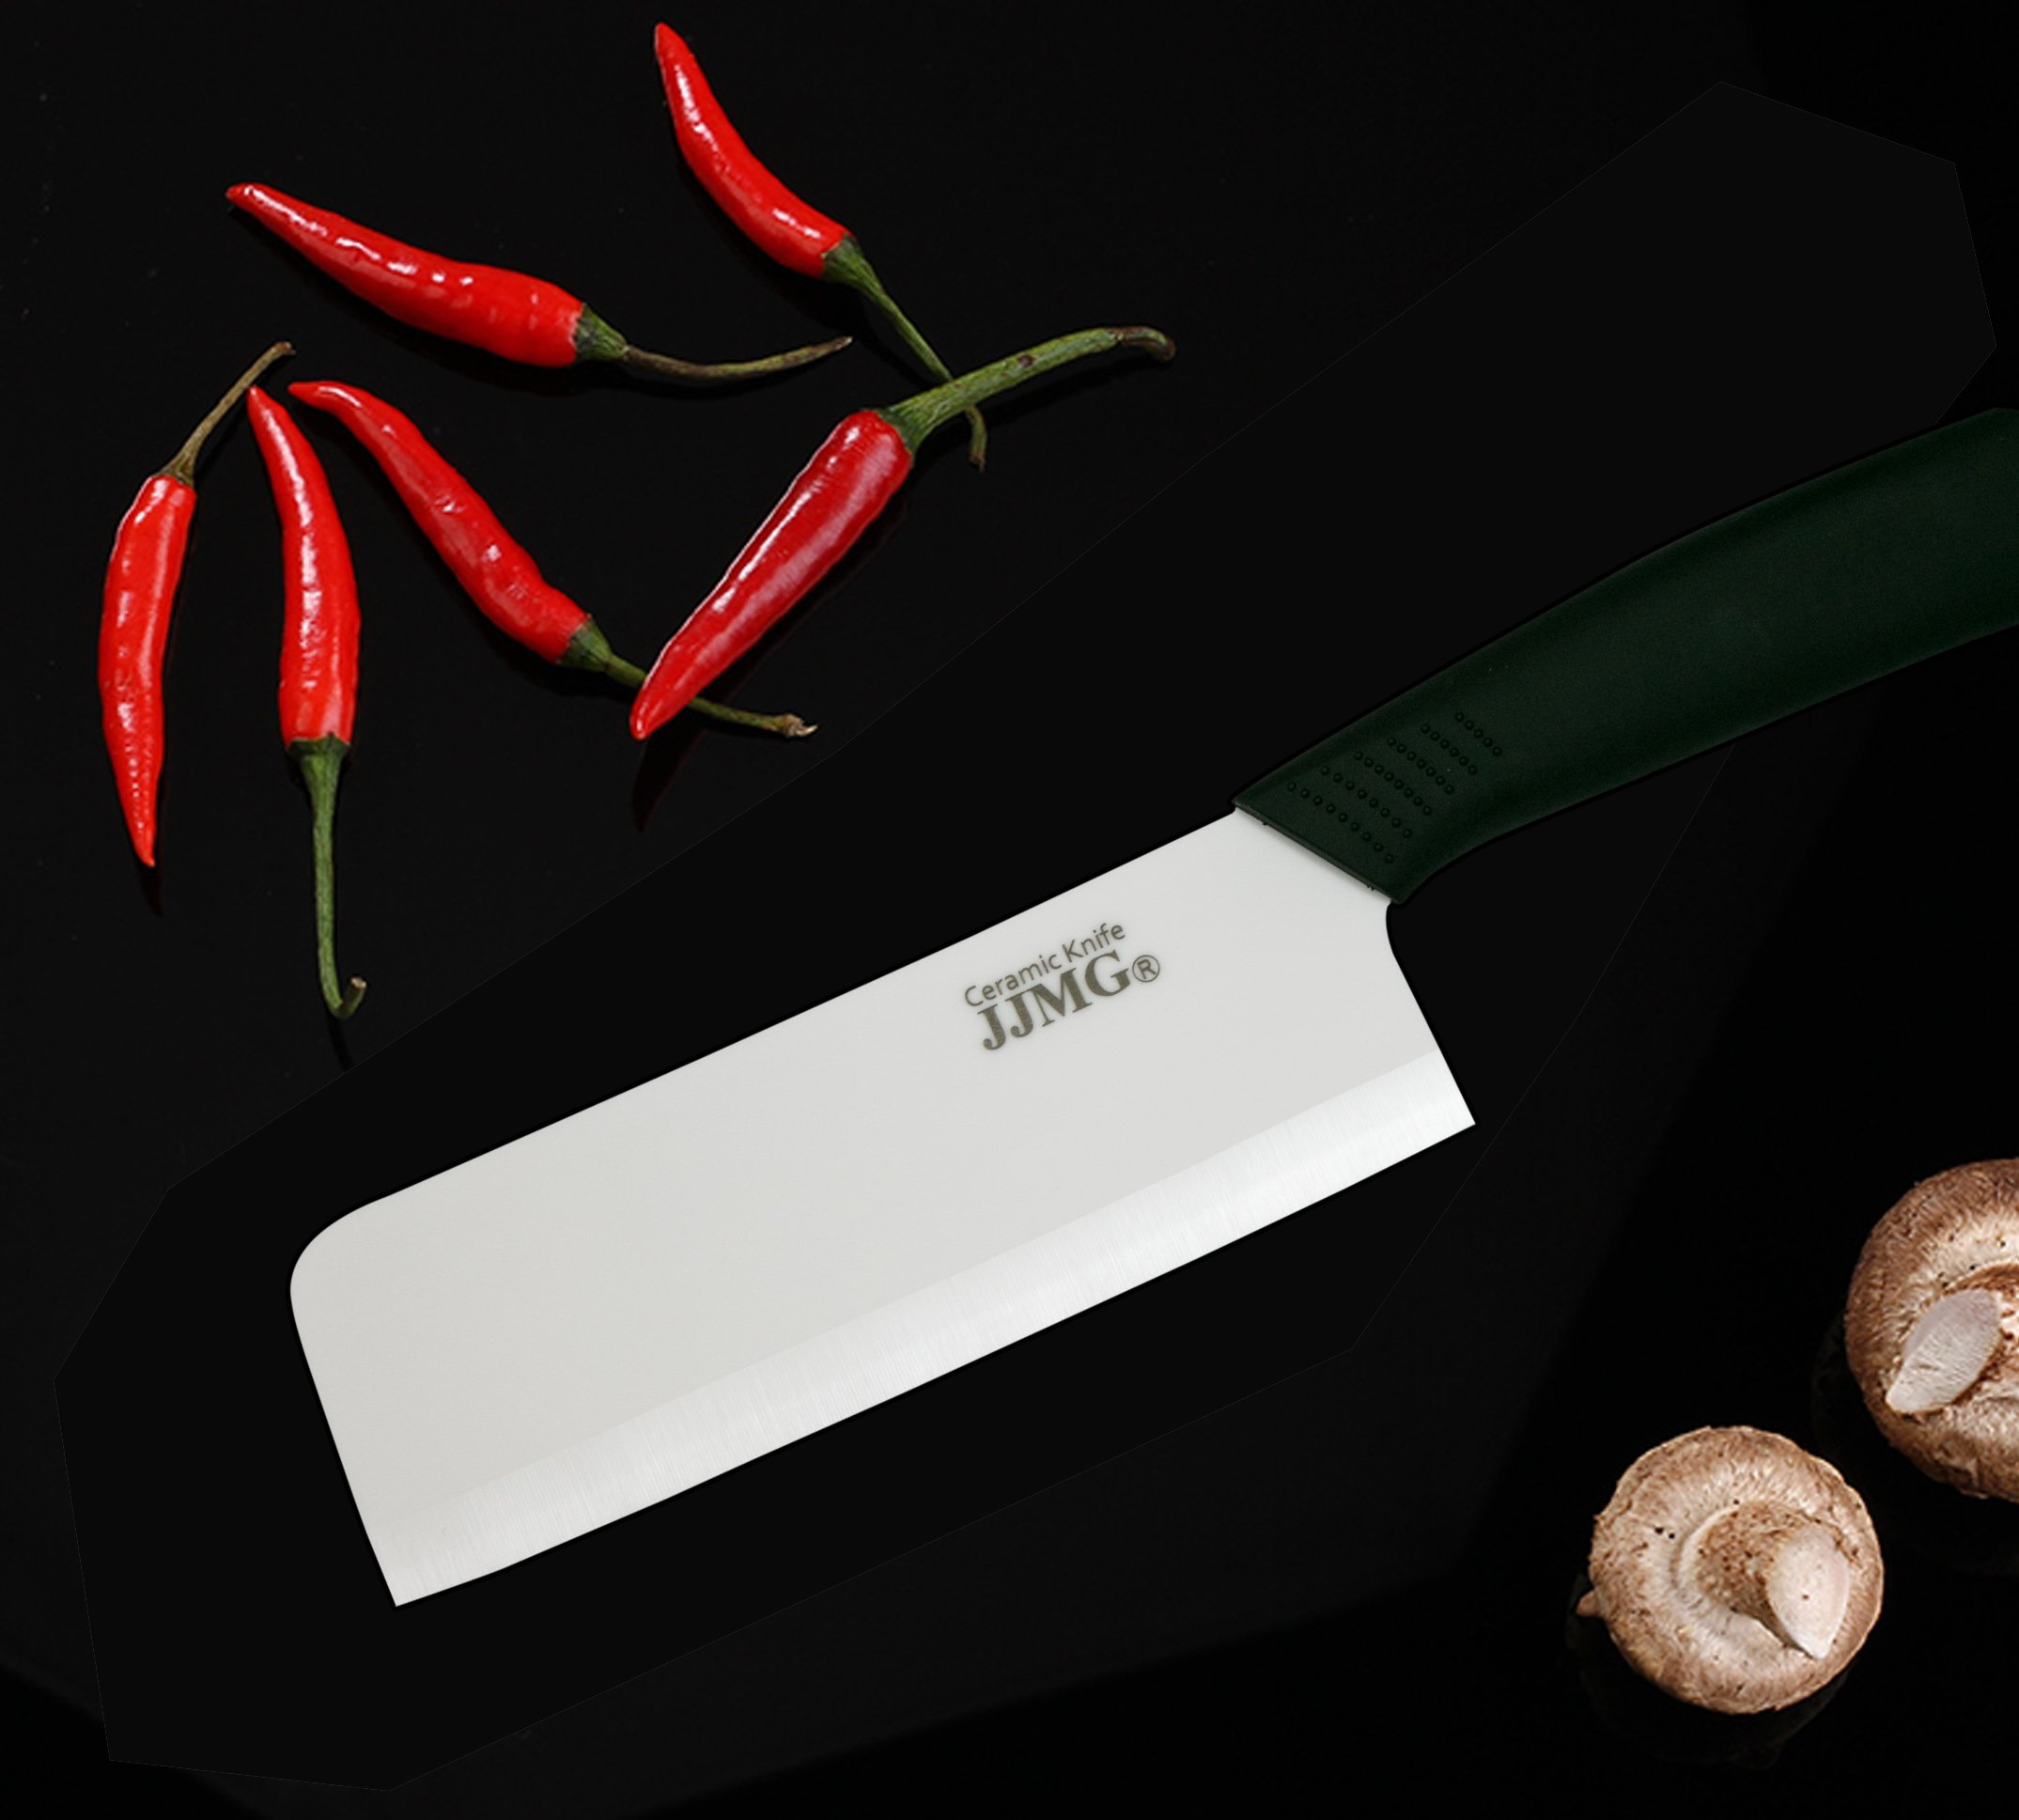 JJMG Ceramic Meat Cleaver Knife Sharp Durable Twice Thicker than Leading Brands non-slip grip Handle Zirconium Blade Cut… 8 SHARP & DURABLE LONG LASTING SHARPNESS: Perfect for Cutting Slicing Mincing & Dicing Meat Cheese and Vegetables. Made of High Quality Ceramic, 60 times more Wear-Resistant than Metal knifes. Easy to Maintain, Holds its Sharp Edge. The knifes blades are made by Zirconium, only diamonds are harder, and stays sharp 15 times longer. NO RUST & BPA-FREE: Rust Resistant, Anti-acid and Alkali Material, Non-toxic, No Contamination, No Metal smell, Easy to Use. will retain its original sharpness up to 15 times longer than steel blades. You will never need sharpening any more! NO OXIDATION: Keep your vegetables free from oxidation when cutting with these ceramic knifes. Keep your vegetables meat & food fresh for a longer period of time.